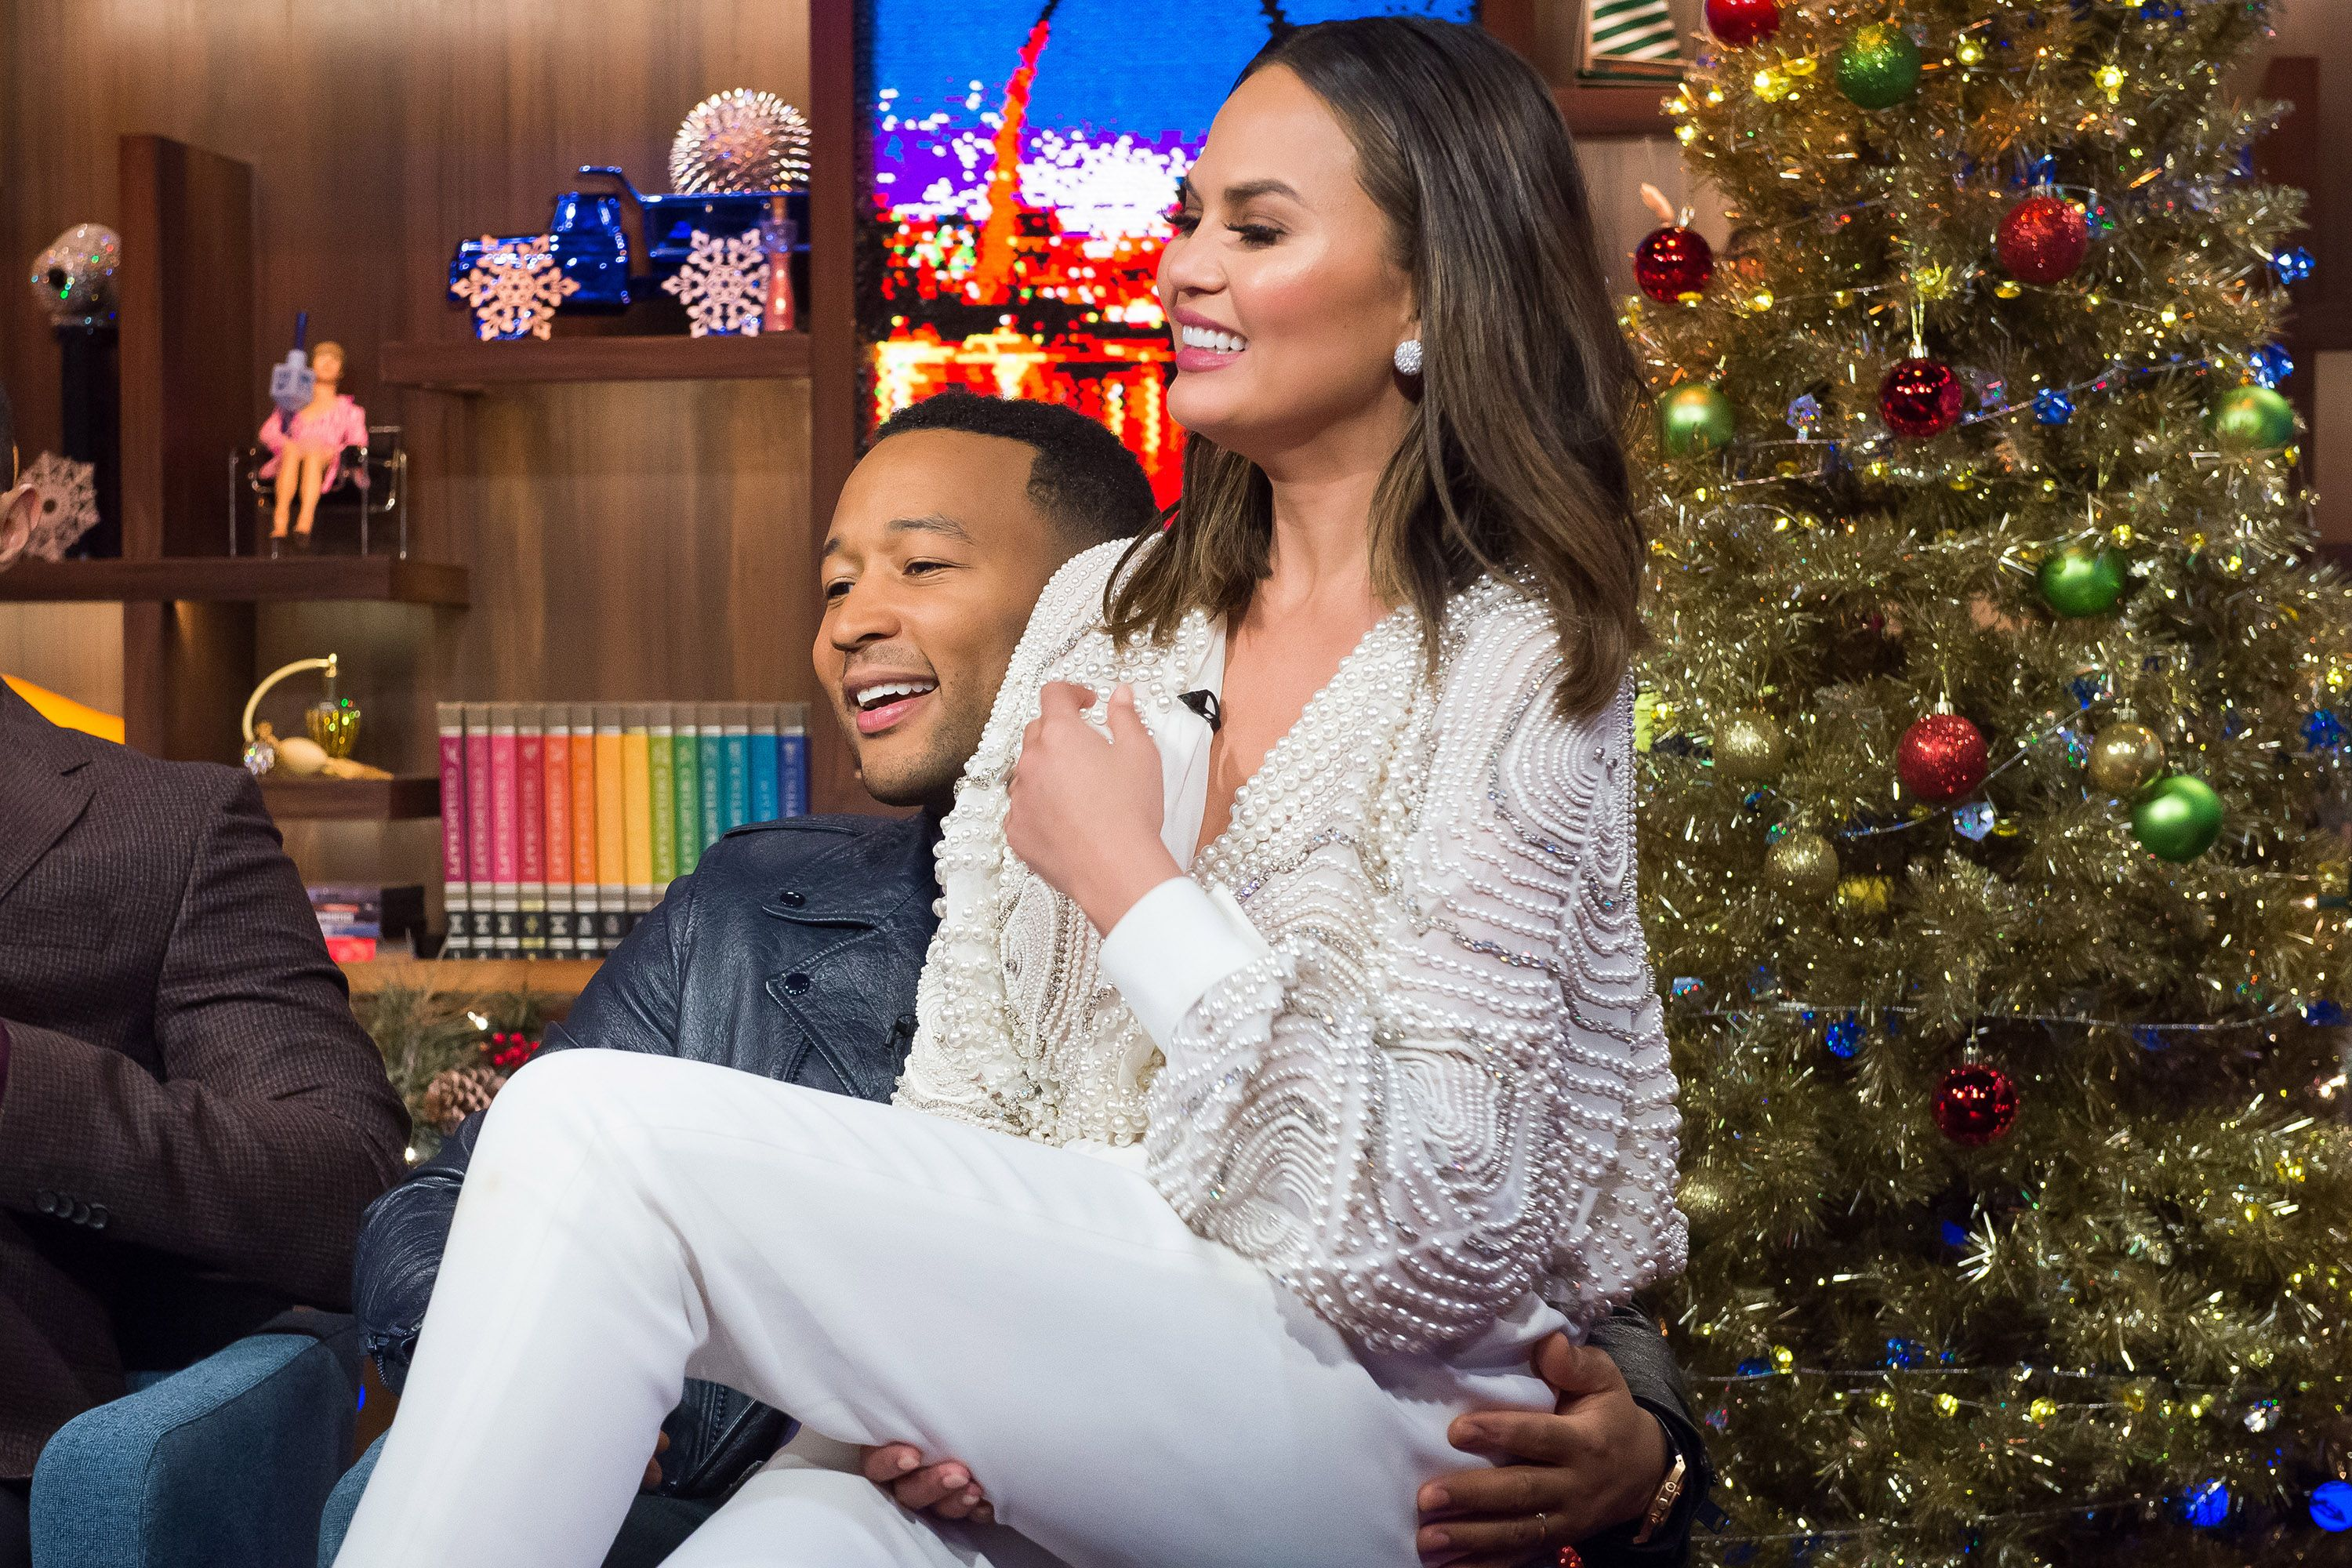 Chrissy Teigen and John Legend Reveal Some of the Craziest Places They've Had Sex